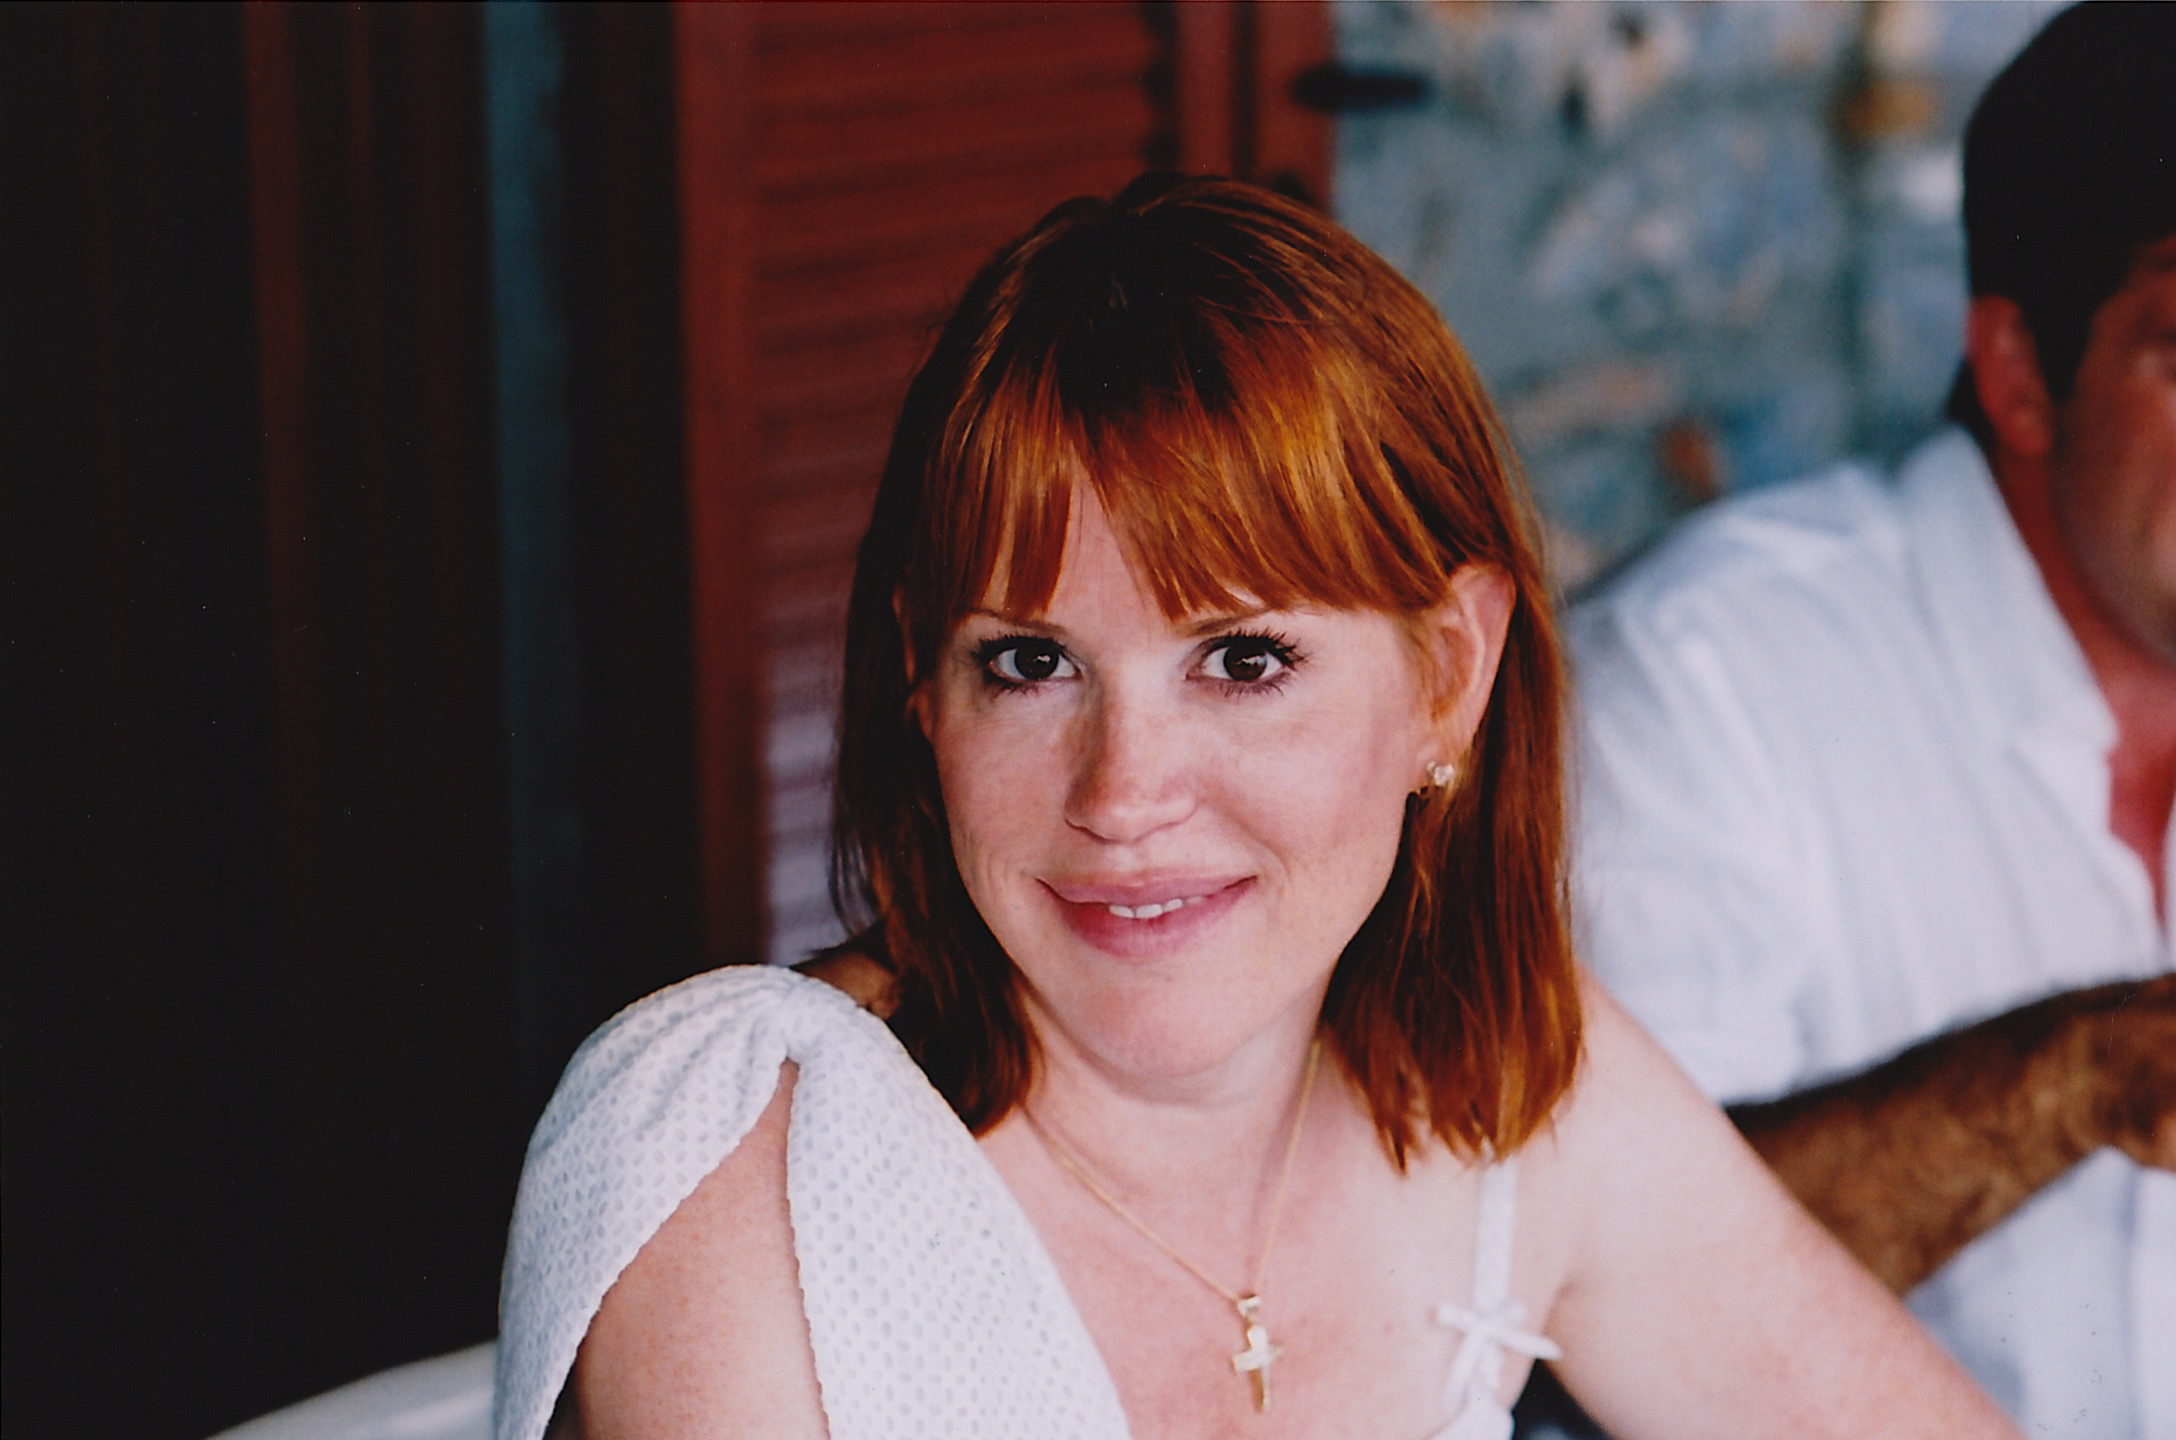 Molly Ringwald earned a  million dollar salary, leaving the net worth at 11 million in 2017